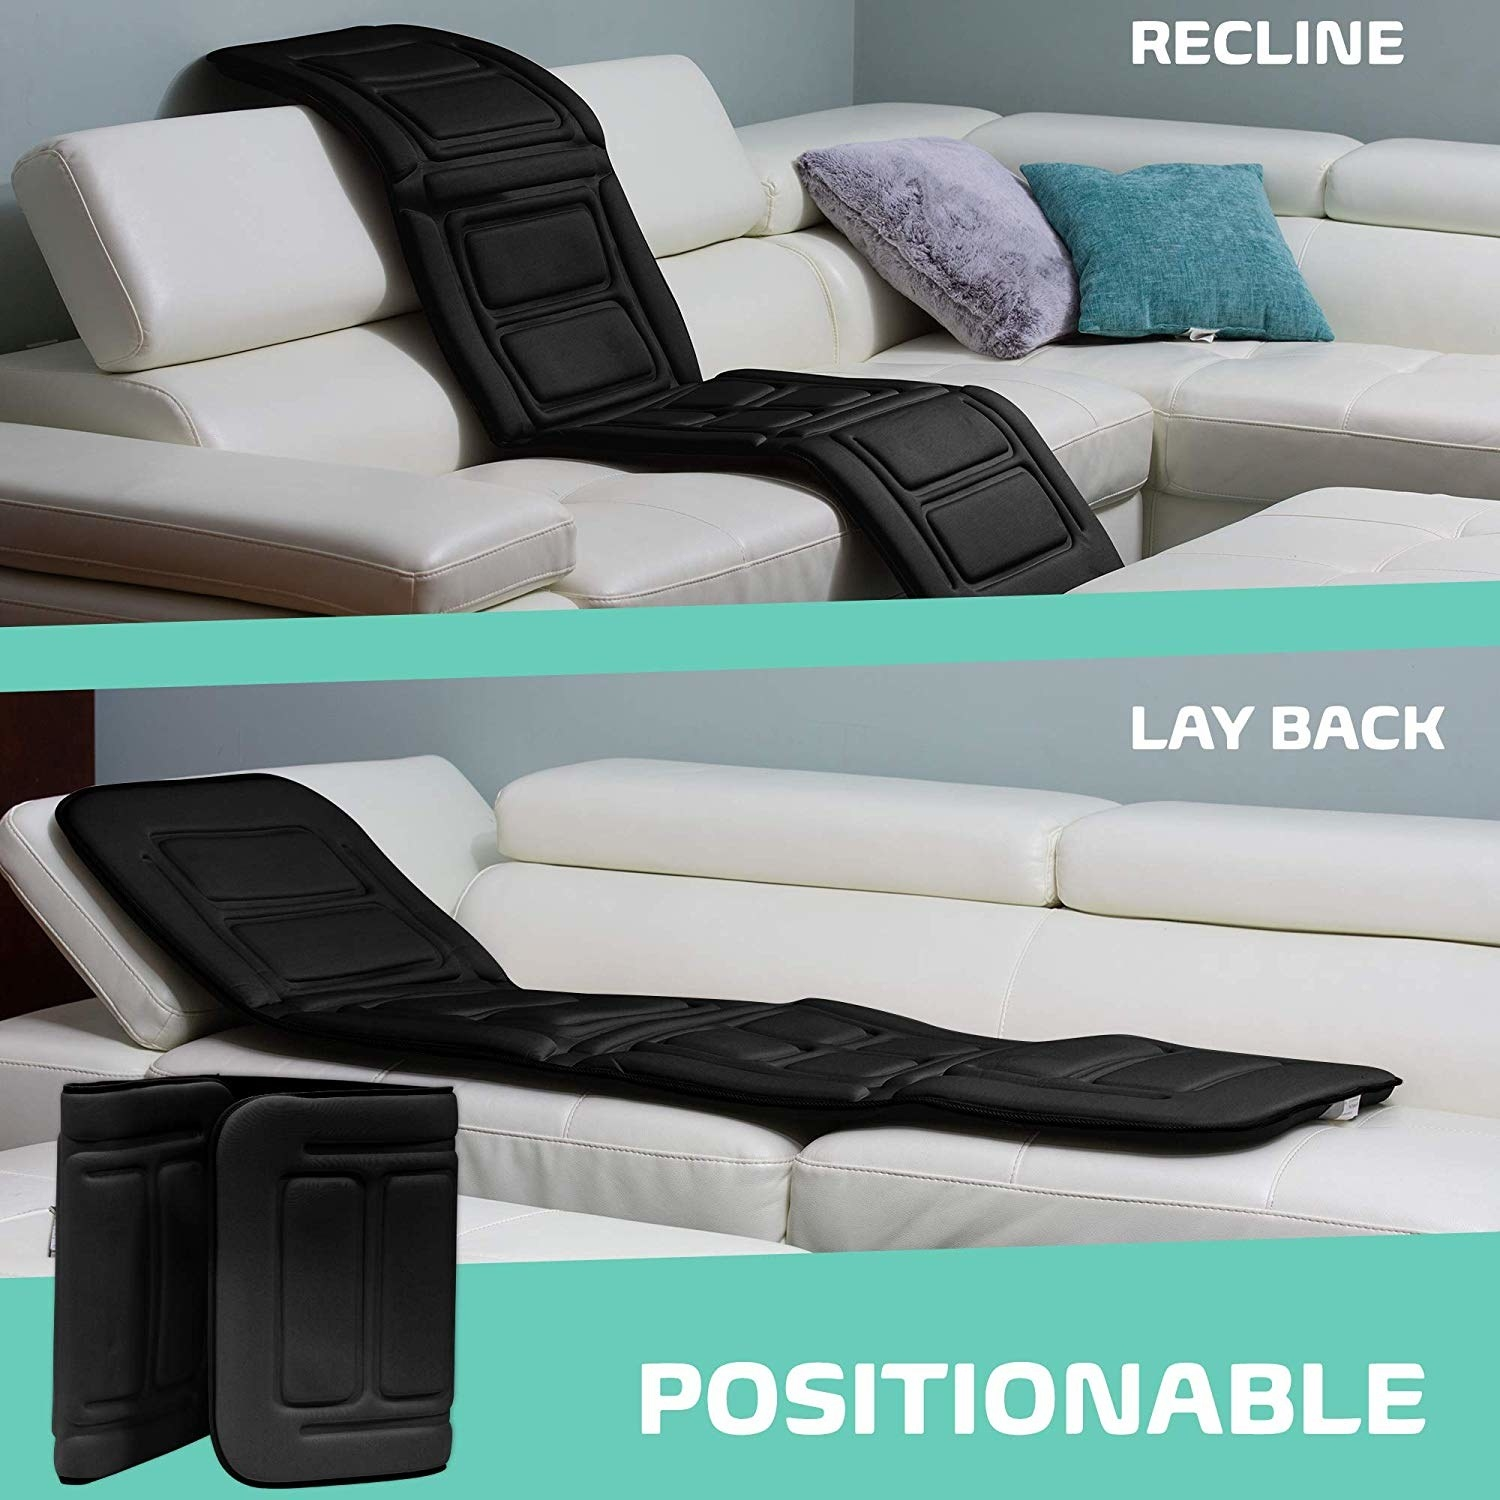 Graphic showing the mat flat on a sofa, in a sitting position. and folded up completely for storage